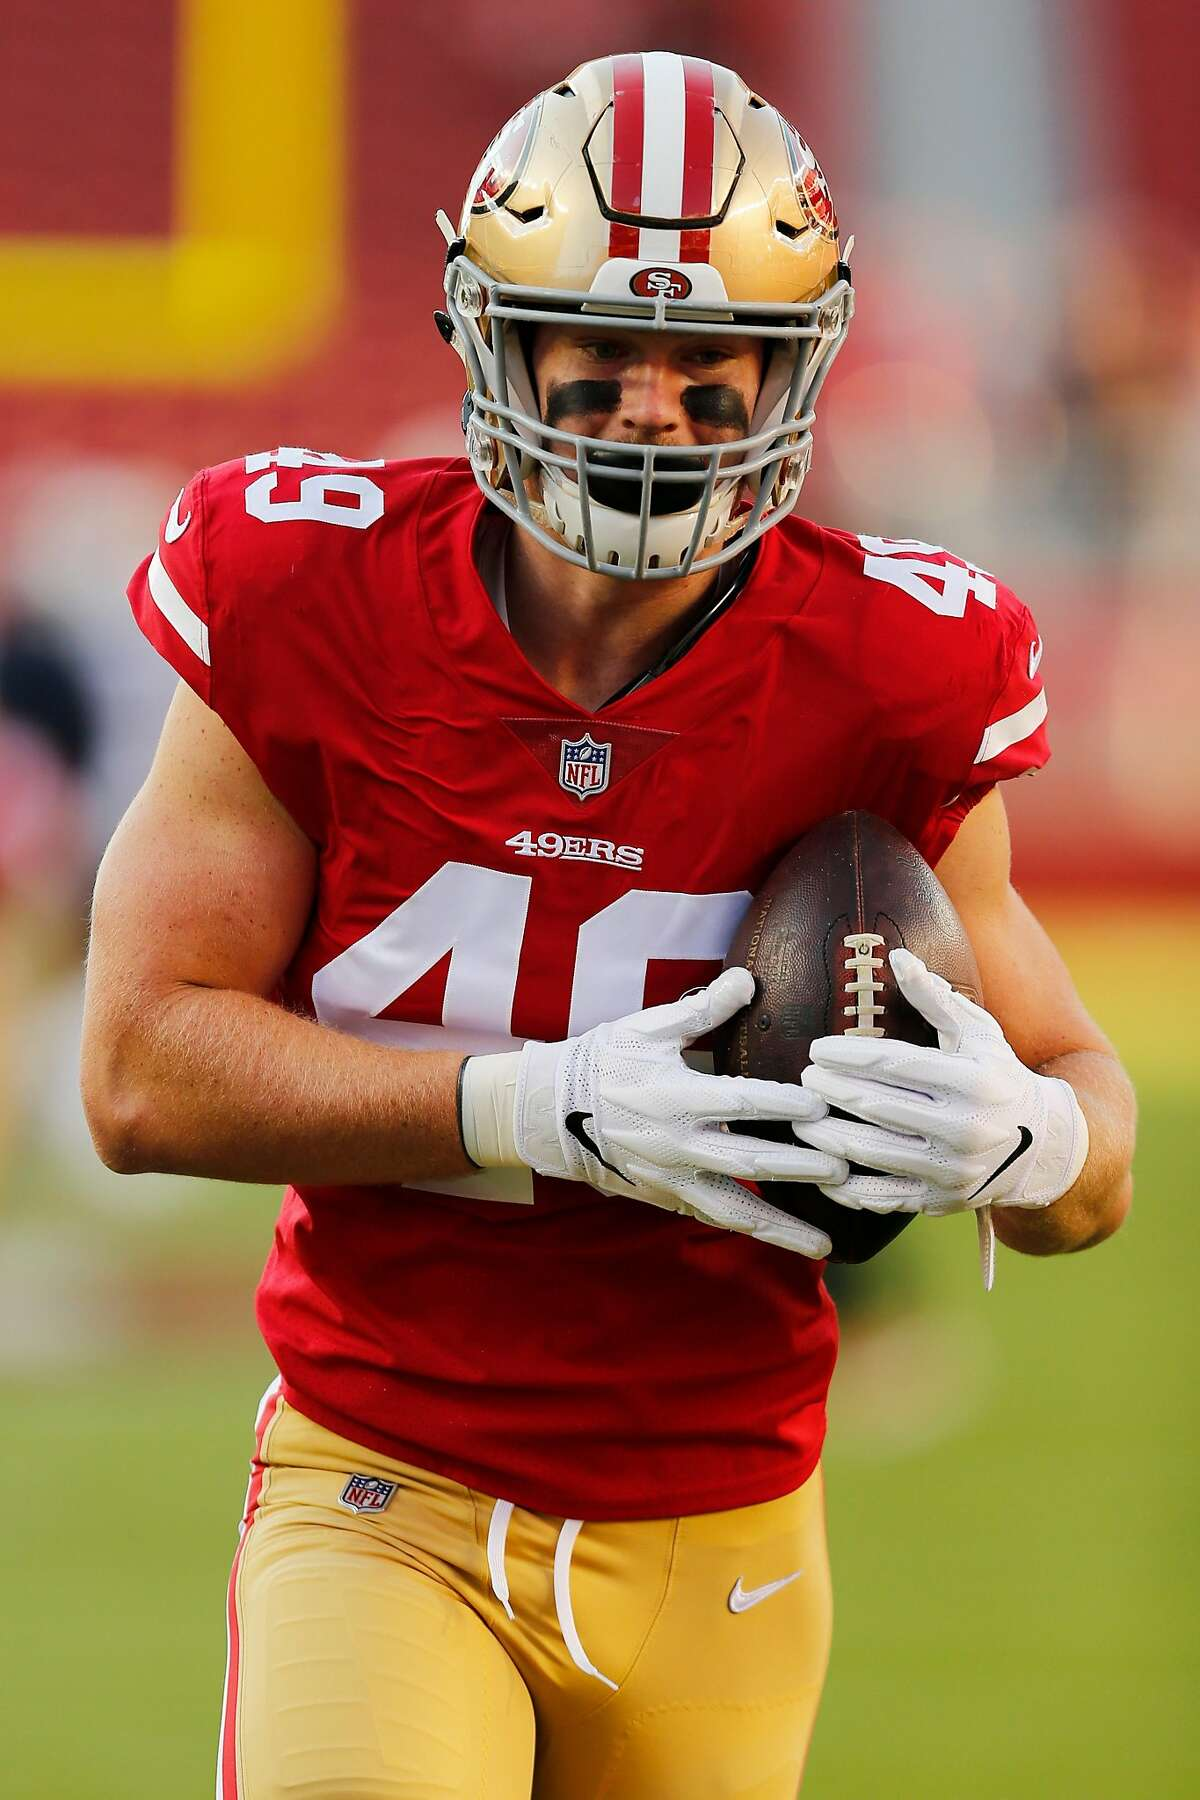 San Francisco 49ers tight end Ross Dwelley (49) warms up before an NFL preseason game against the Los Angeles Chargers at Levi's Stadium on Thursday, Aug. 30, 2018, in Santa Clara, Calif.